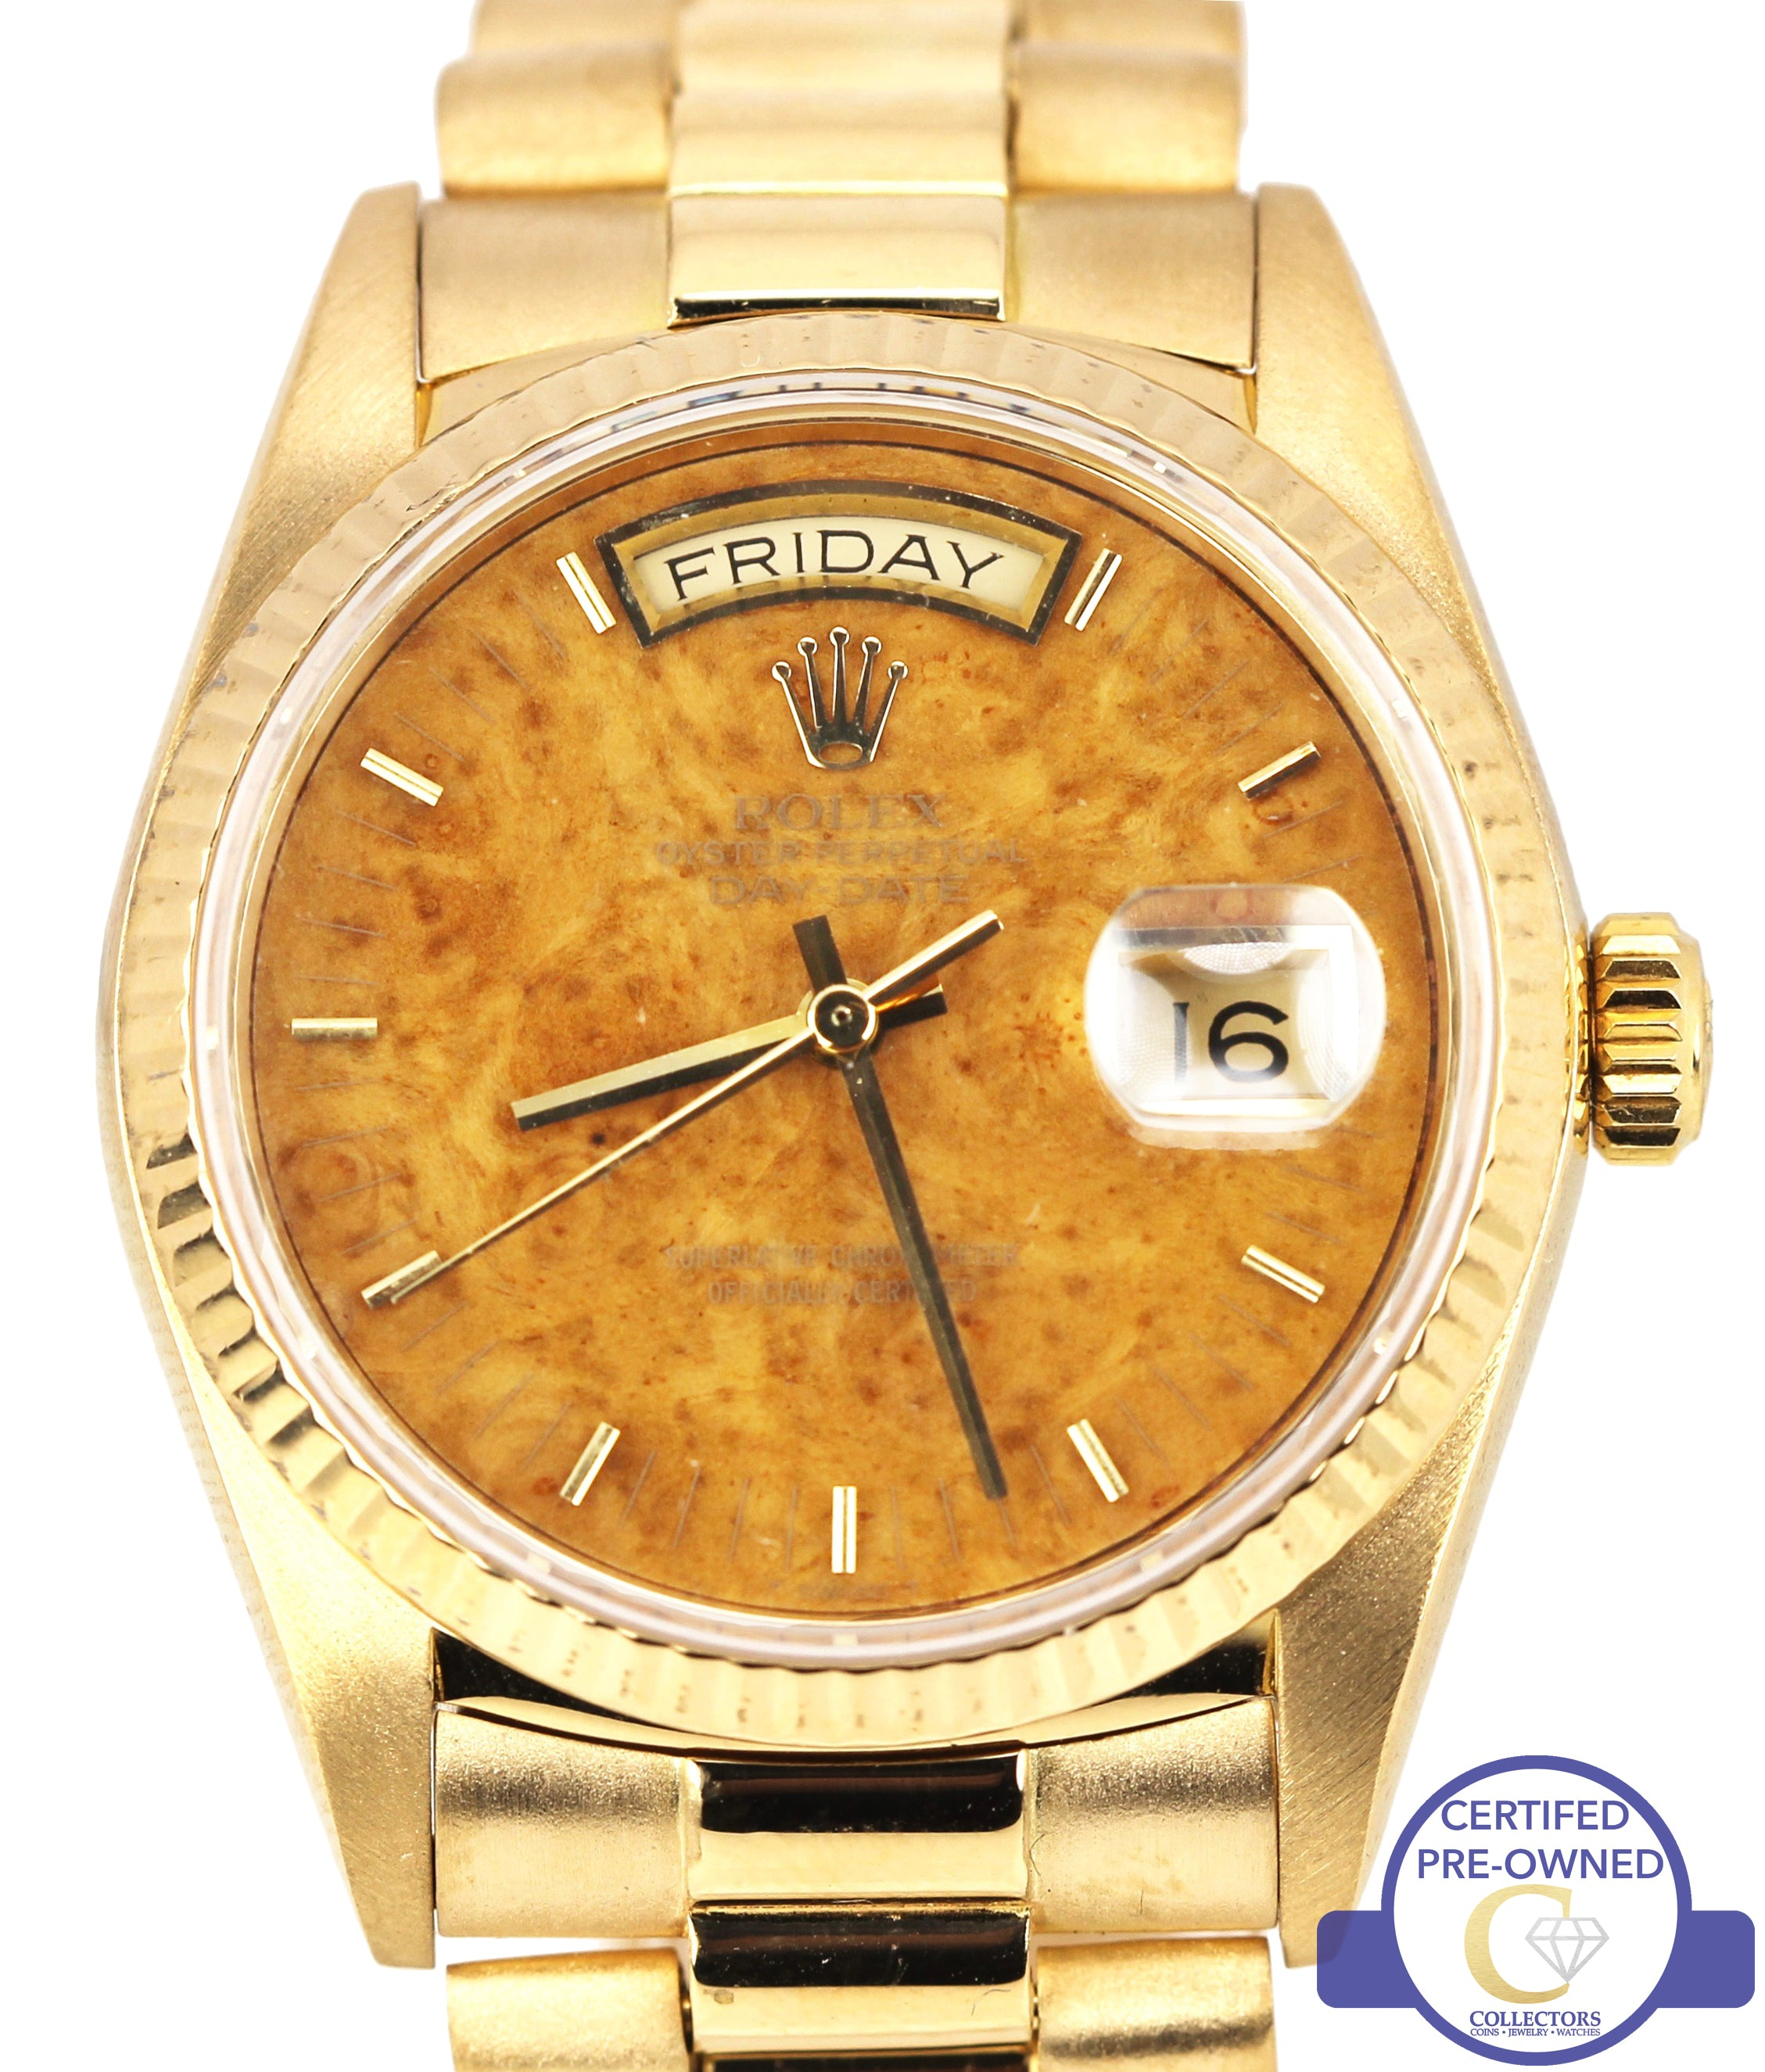 Rolex Day-Date President 36mm 18038 18K Gold Burl Wood Watch Presidential